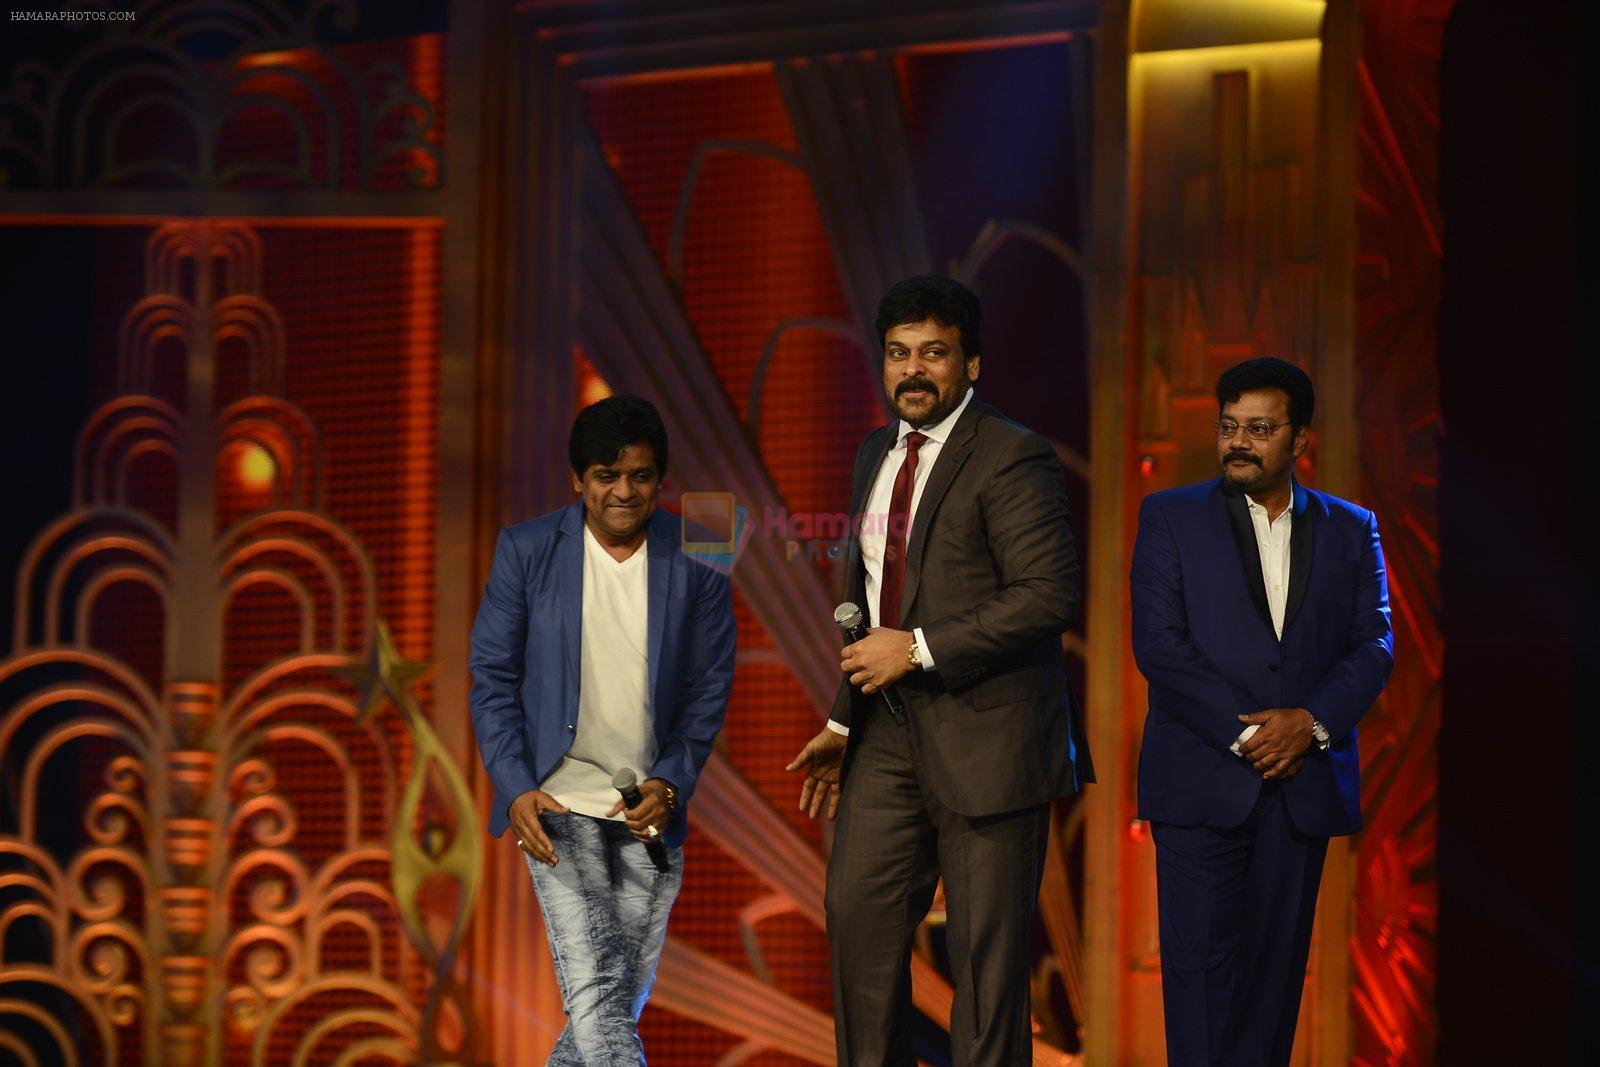 Chiranjeevi at SIIMA 2016 DAY 1 red carpet on 30th June 2016